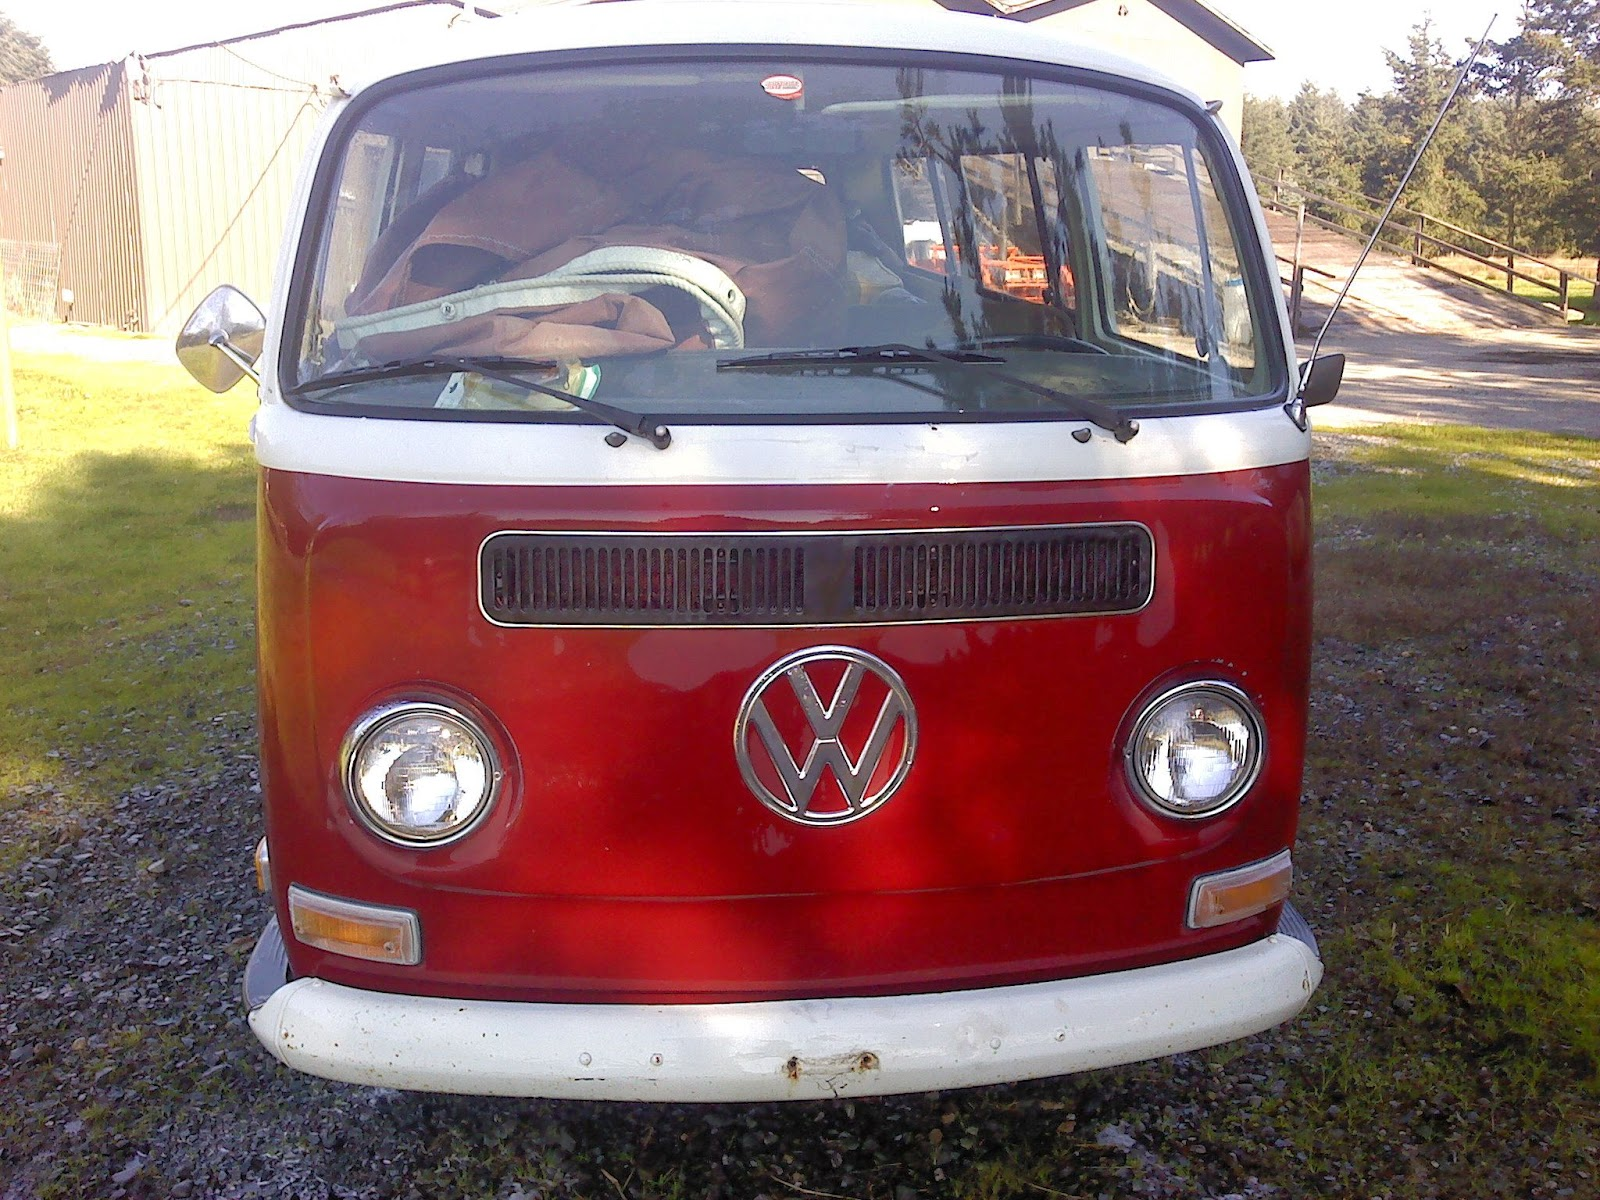 1971 Transporter for sale in Everett, WA, USA | VW Bus